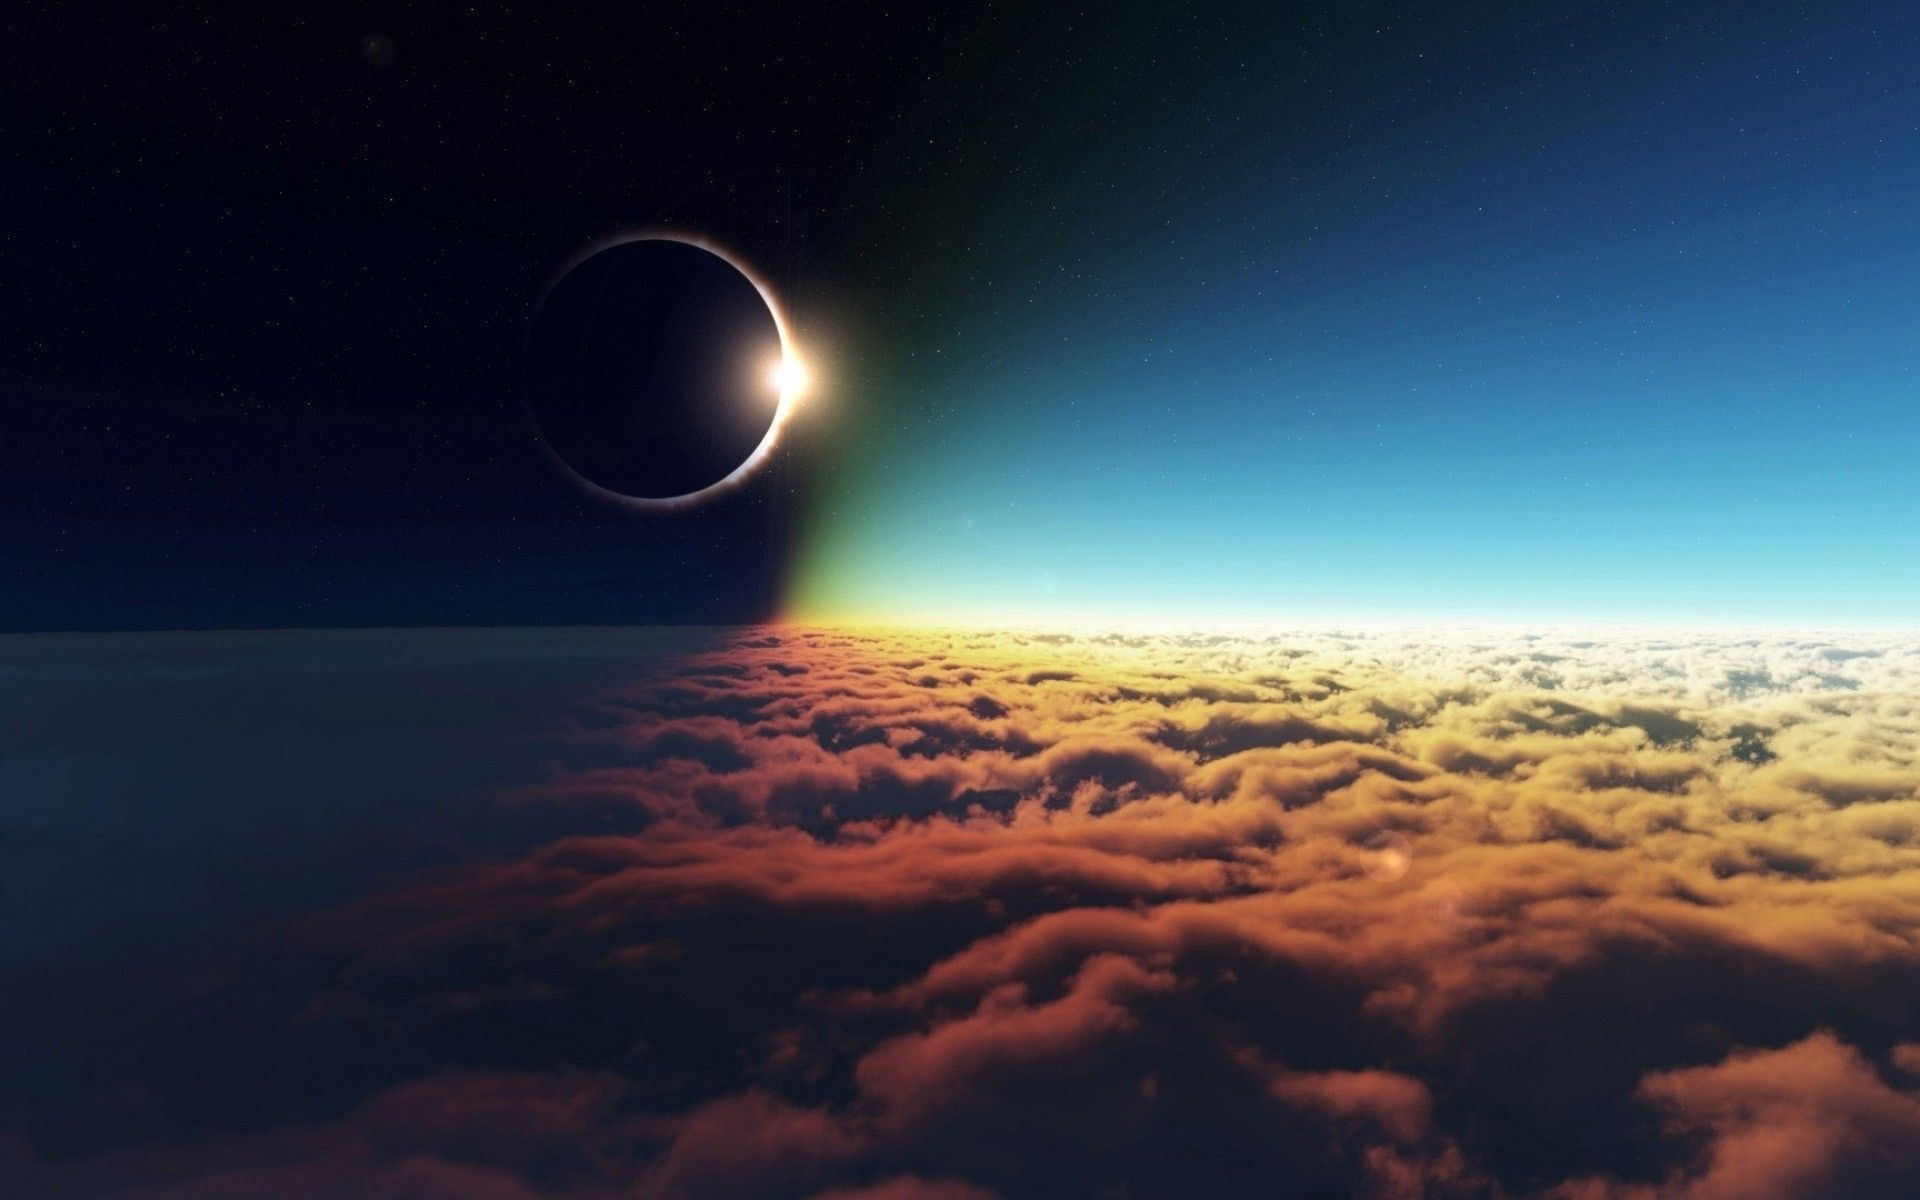 eclipse wallpaper Gallery 68 images 1920x1200